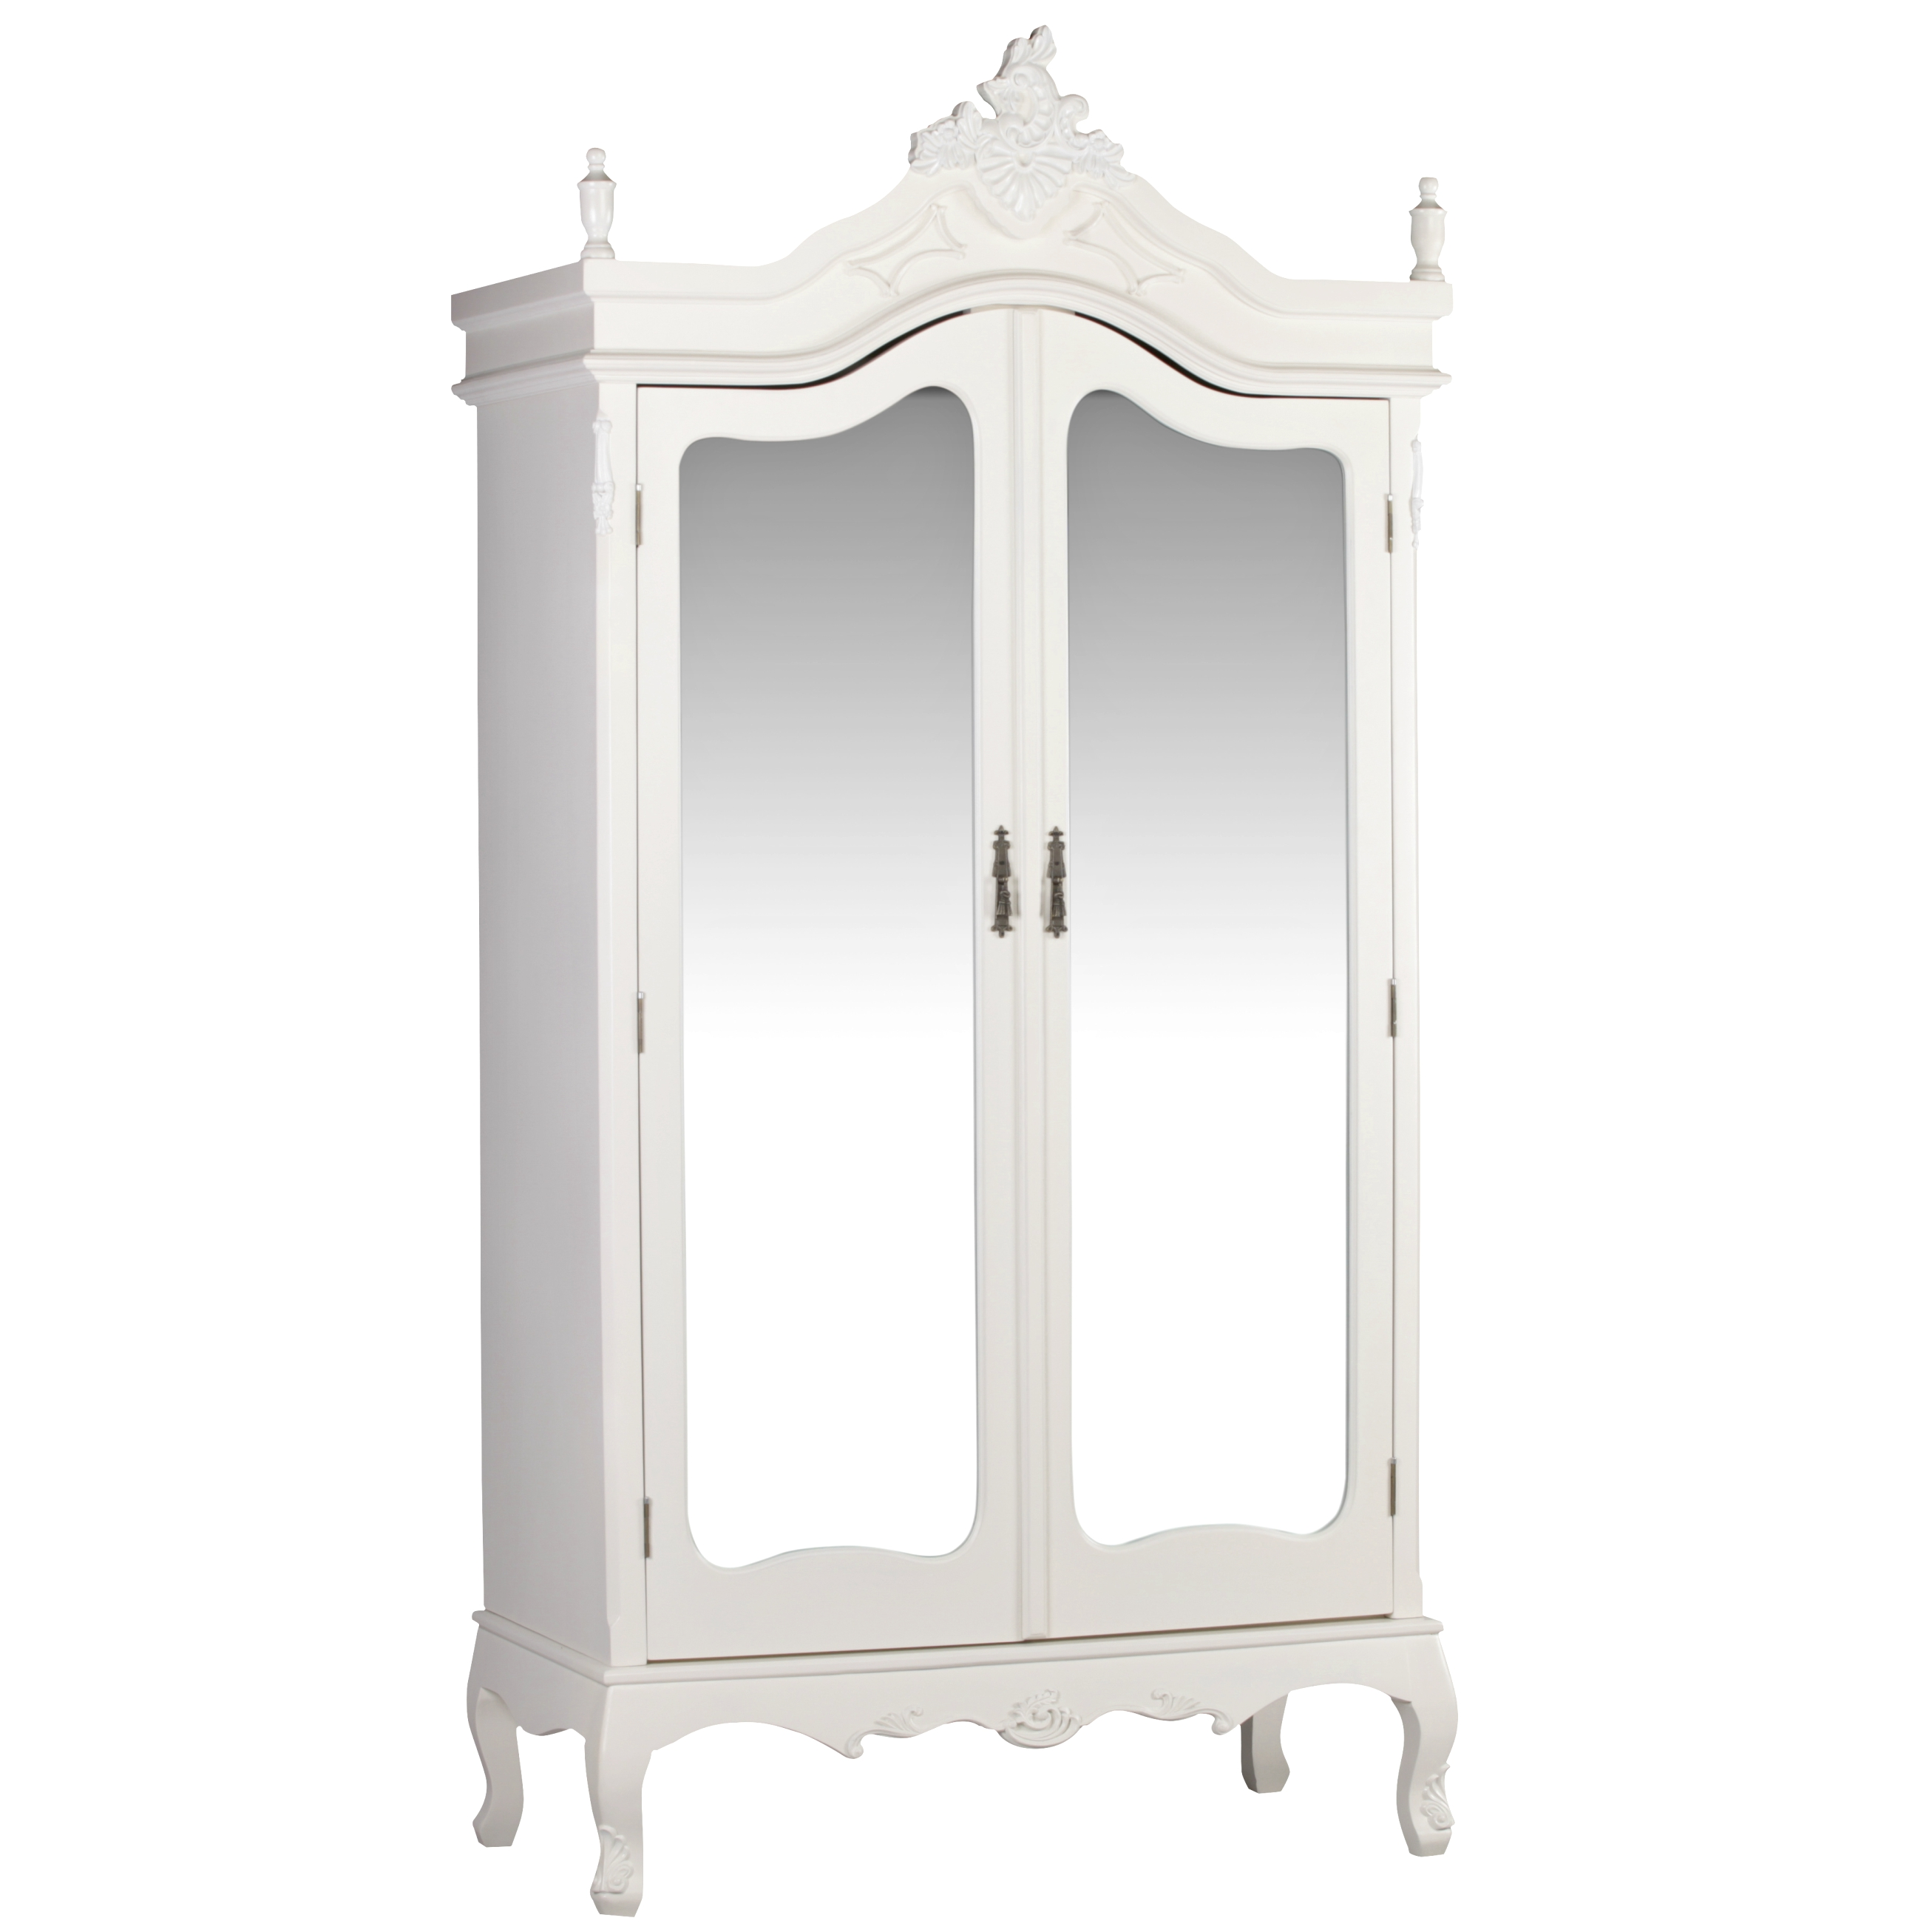 French Antique Cream Double Full Mirrored Armoire